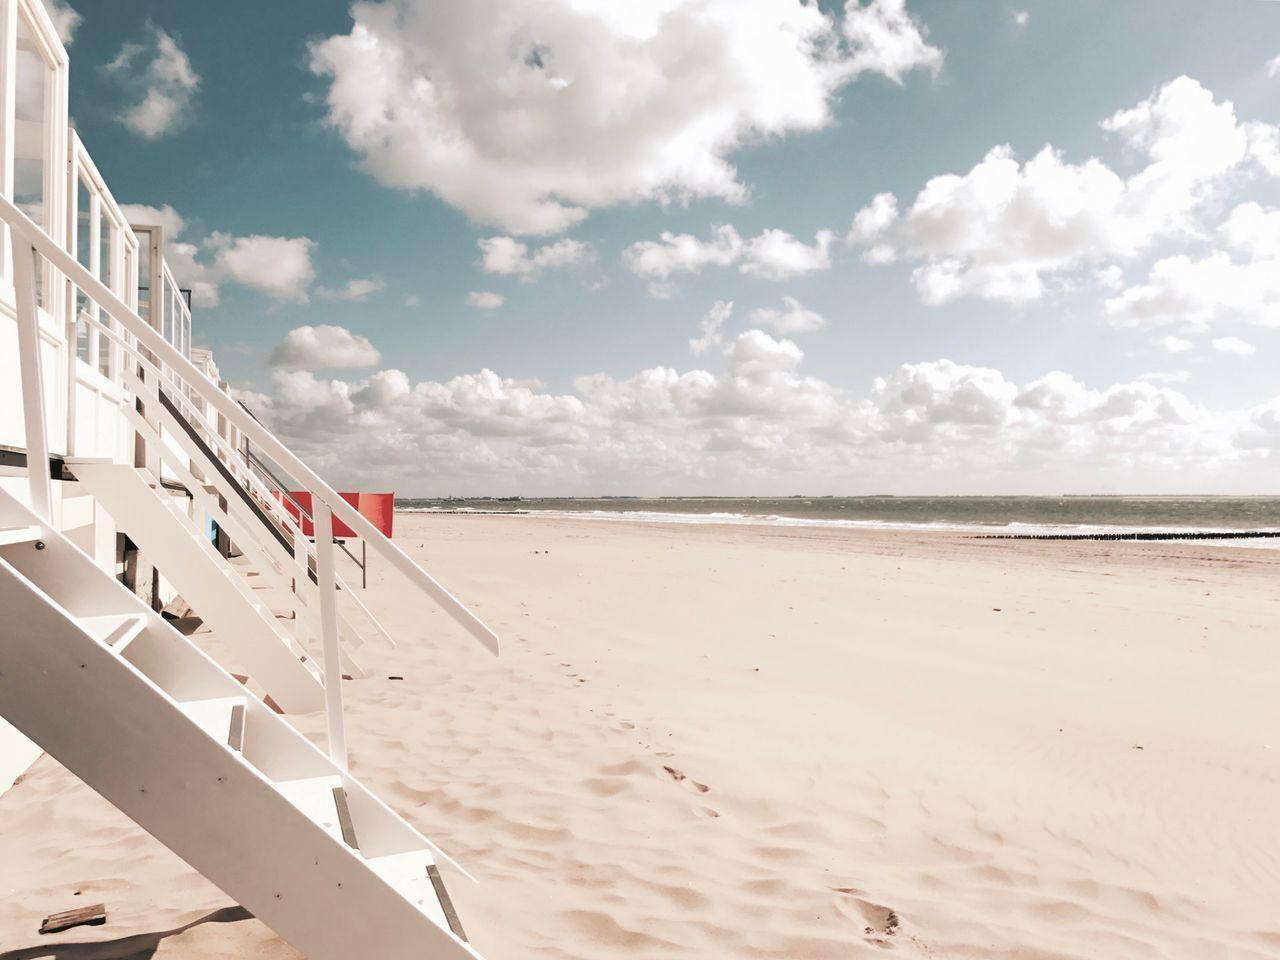 Beach Beauty In Nature Cloud - Sky Day Horizon Over Water Nature No People Outdoors Sand Scenics Sea Sky Summer Sunlight Tranquil Scene Tranquility Vacations Water